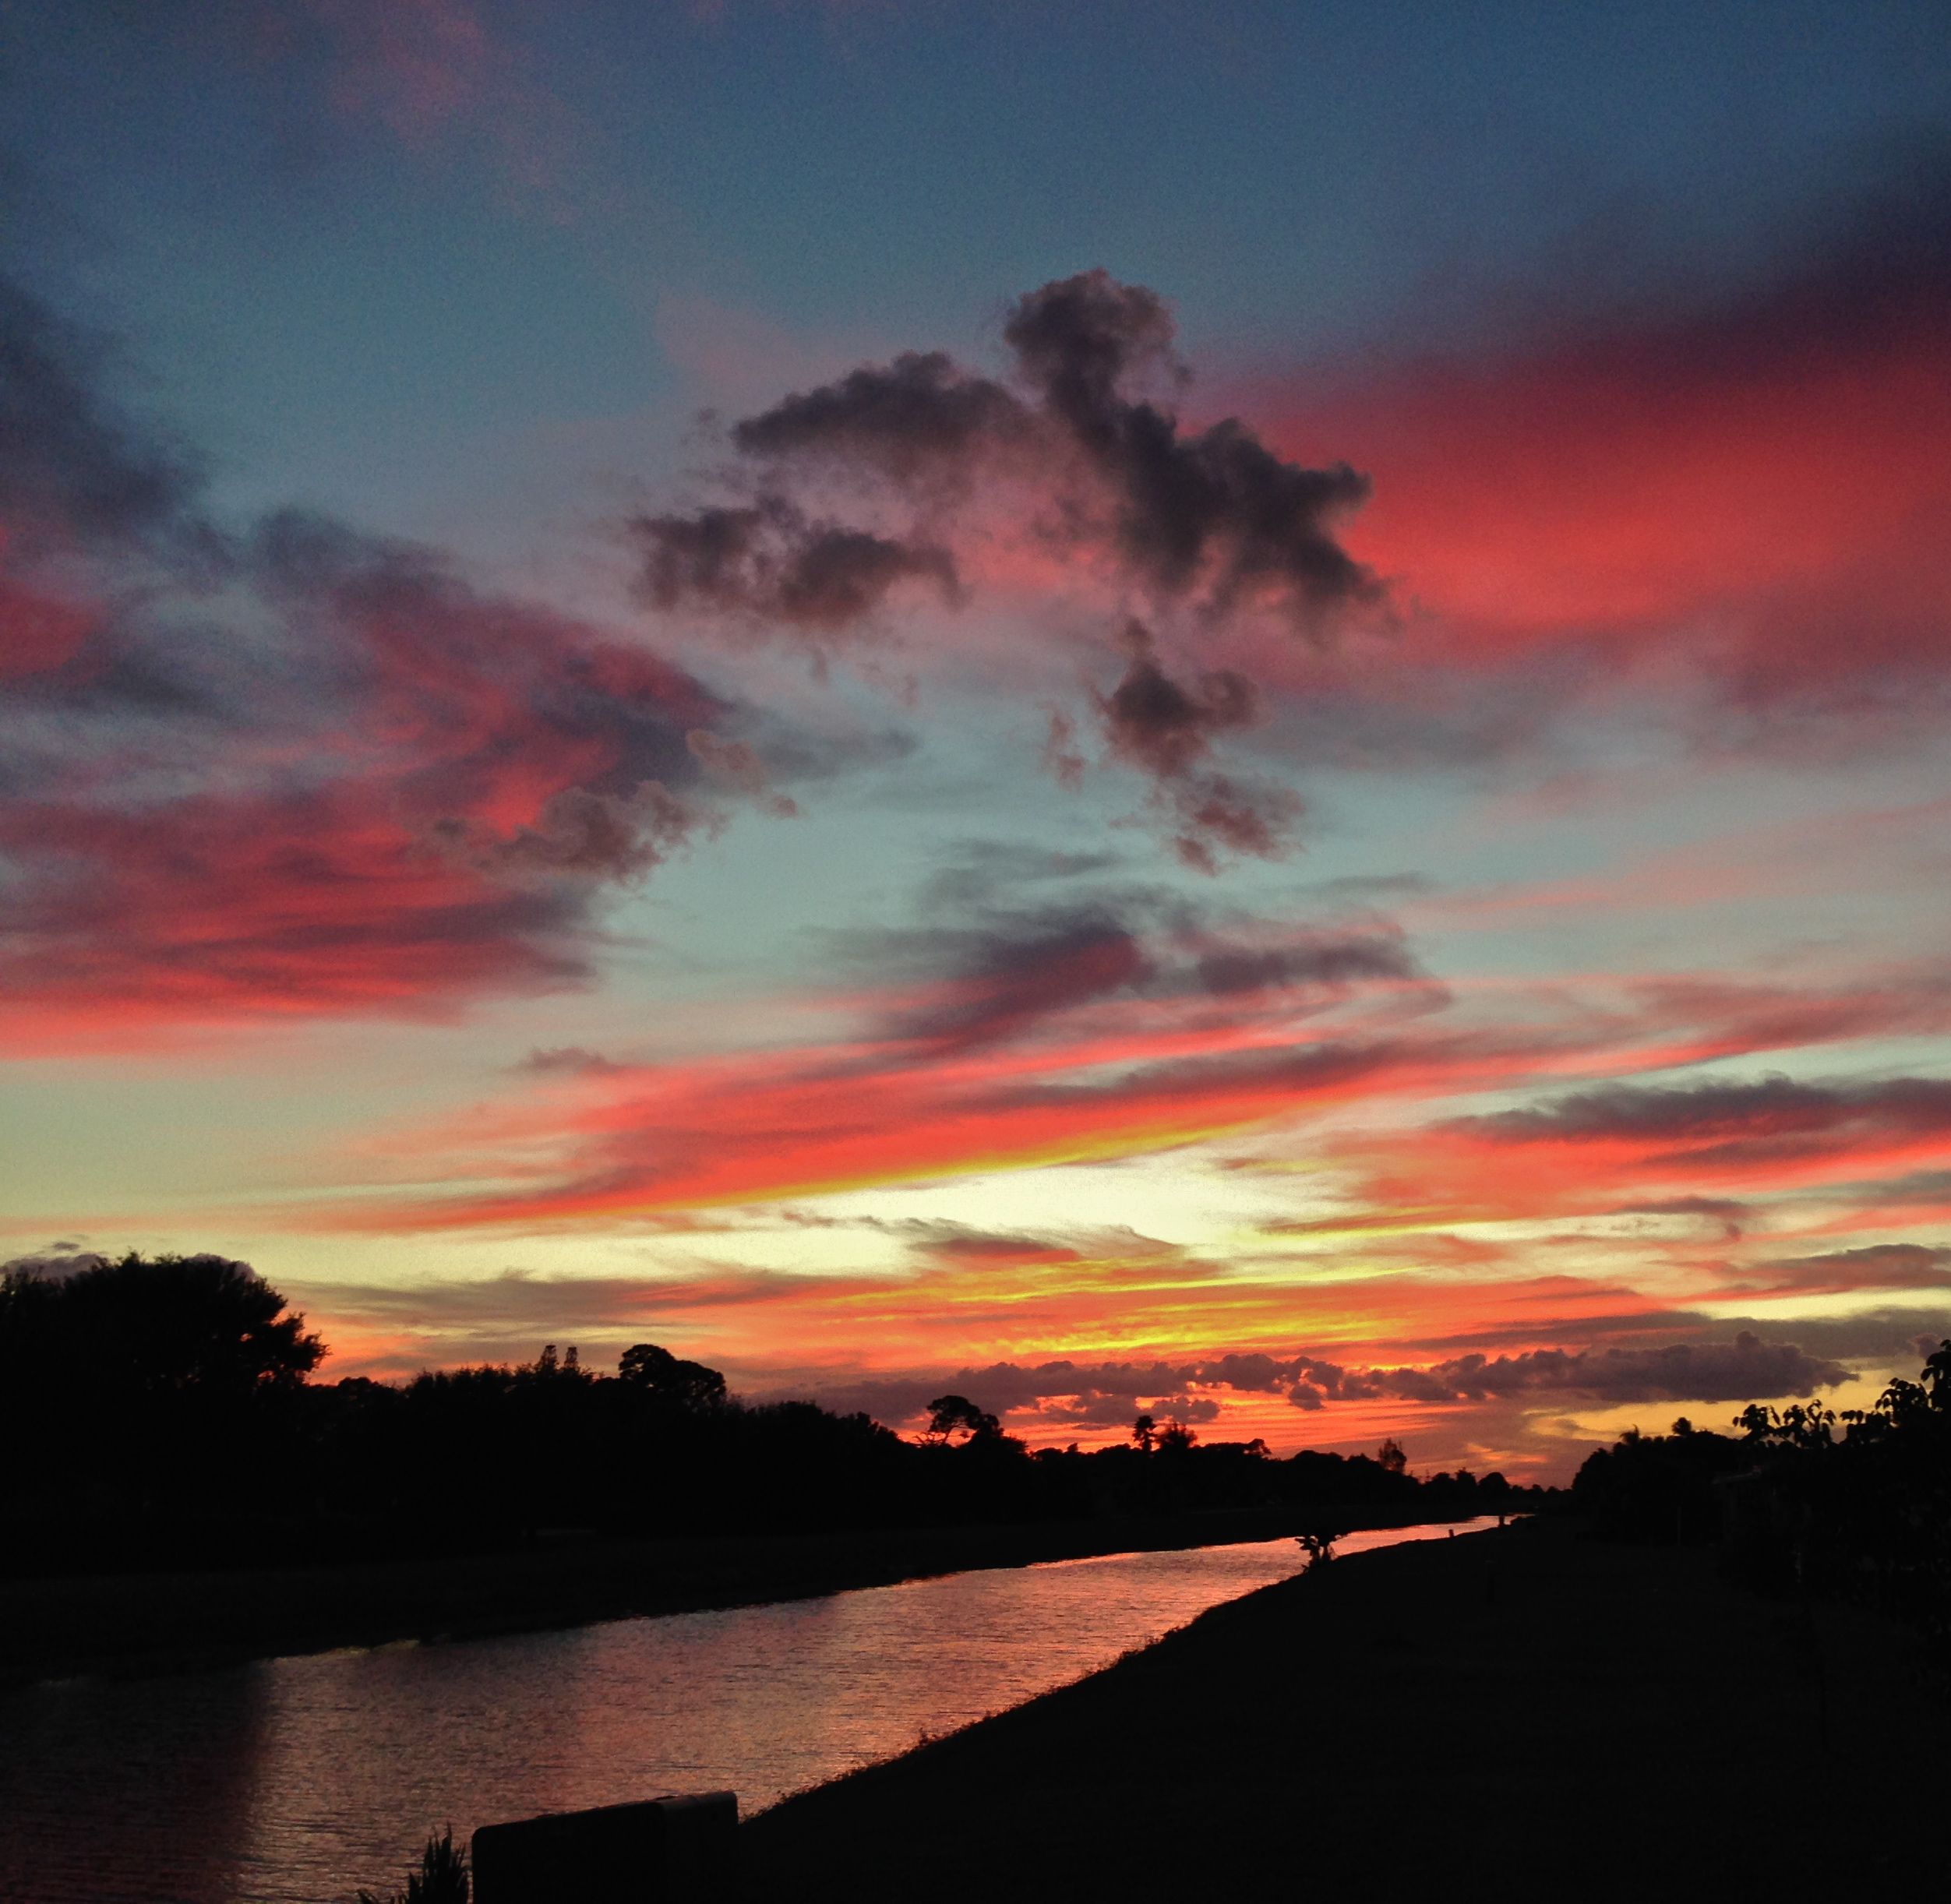 A late October sunset from our backyard in Boynton Beach, Florida.